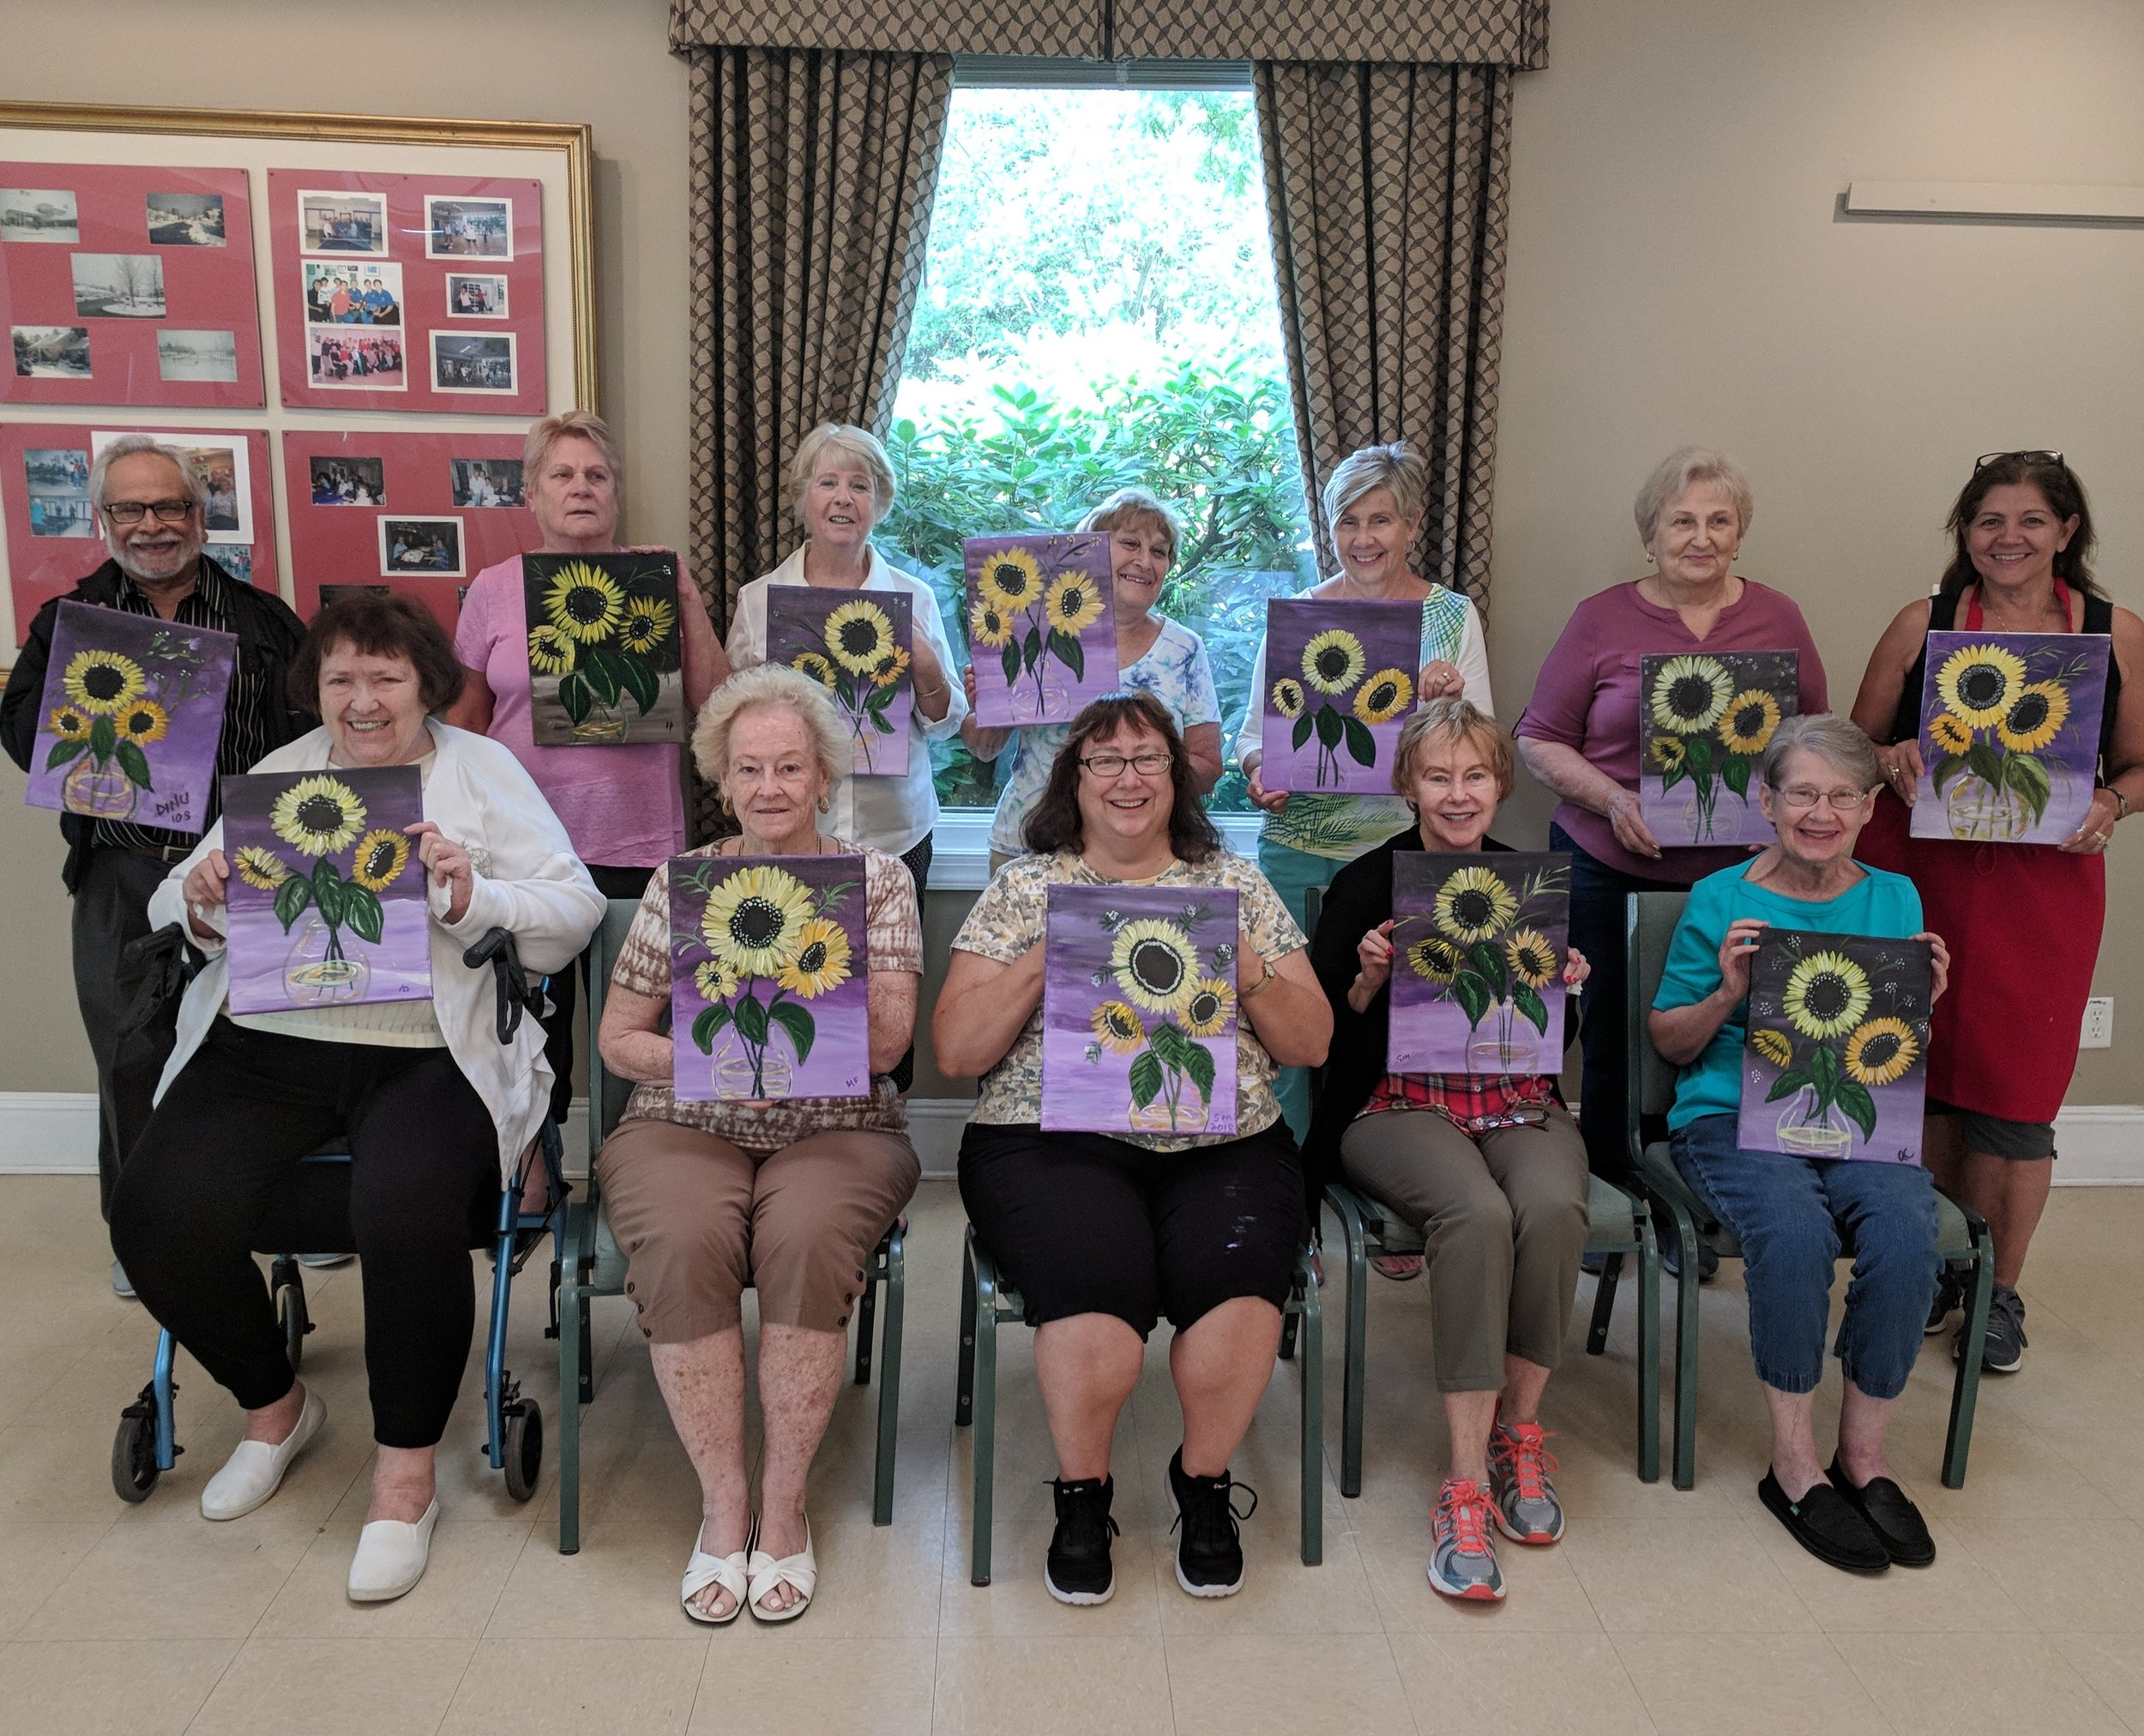 Fabulous Sunflowers -     Paint Party at the Four Seasons Country Club